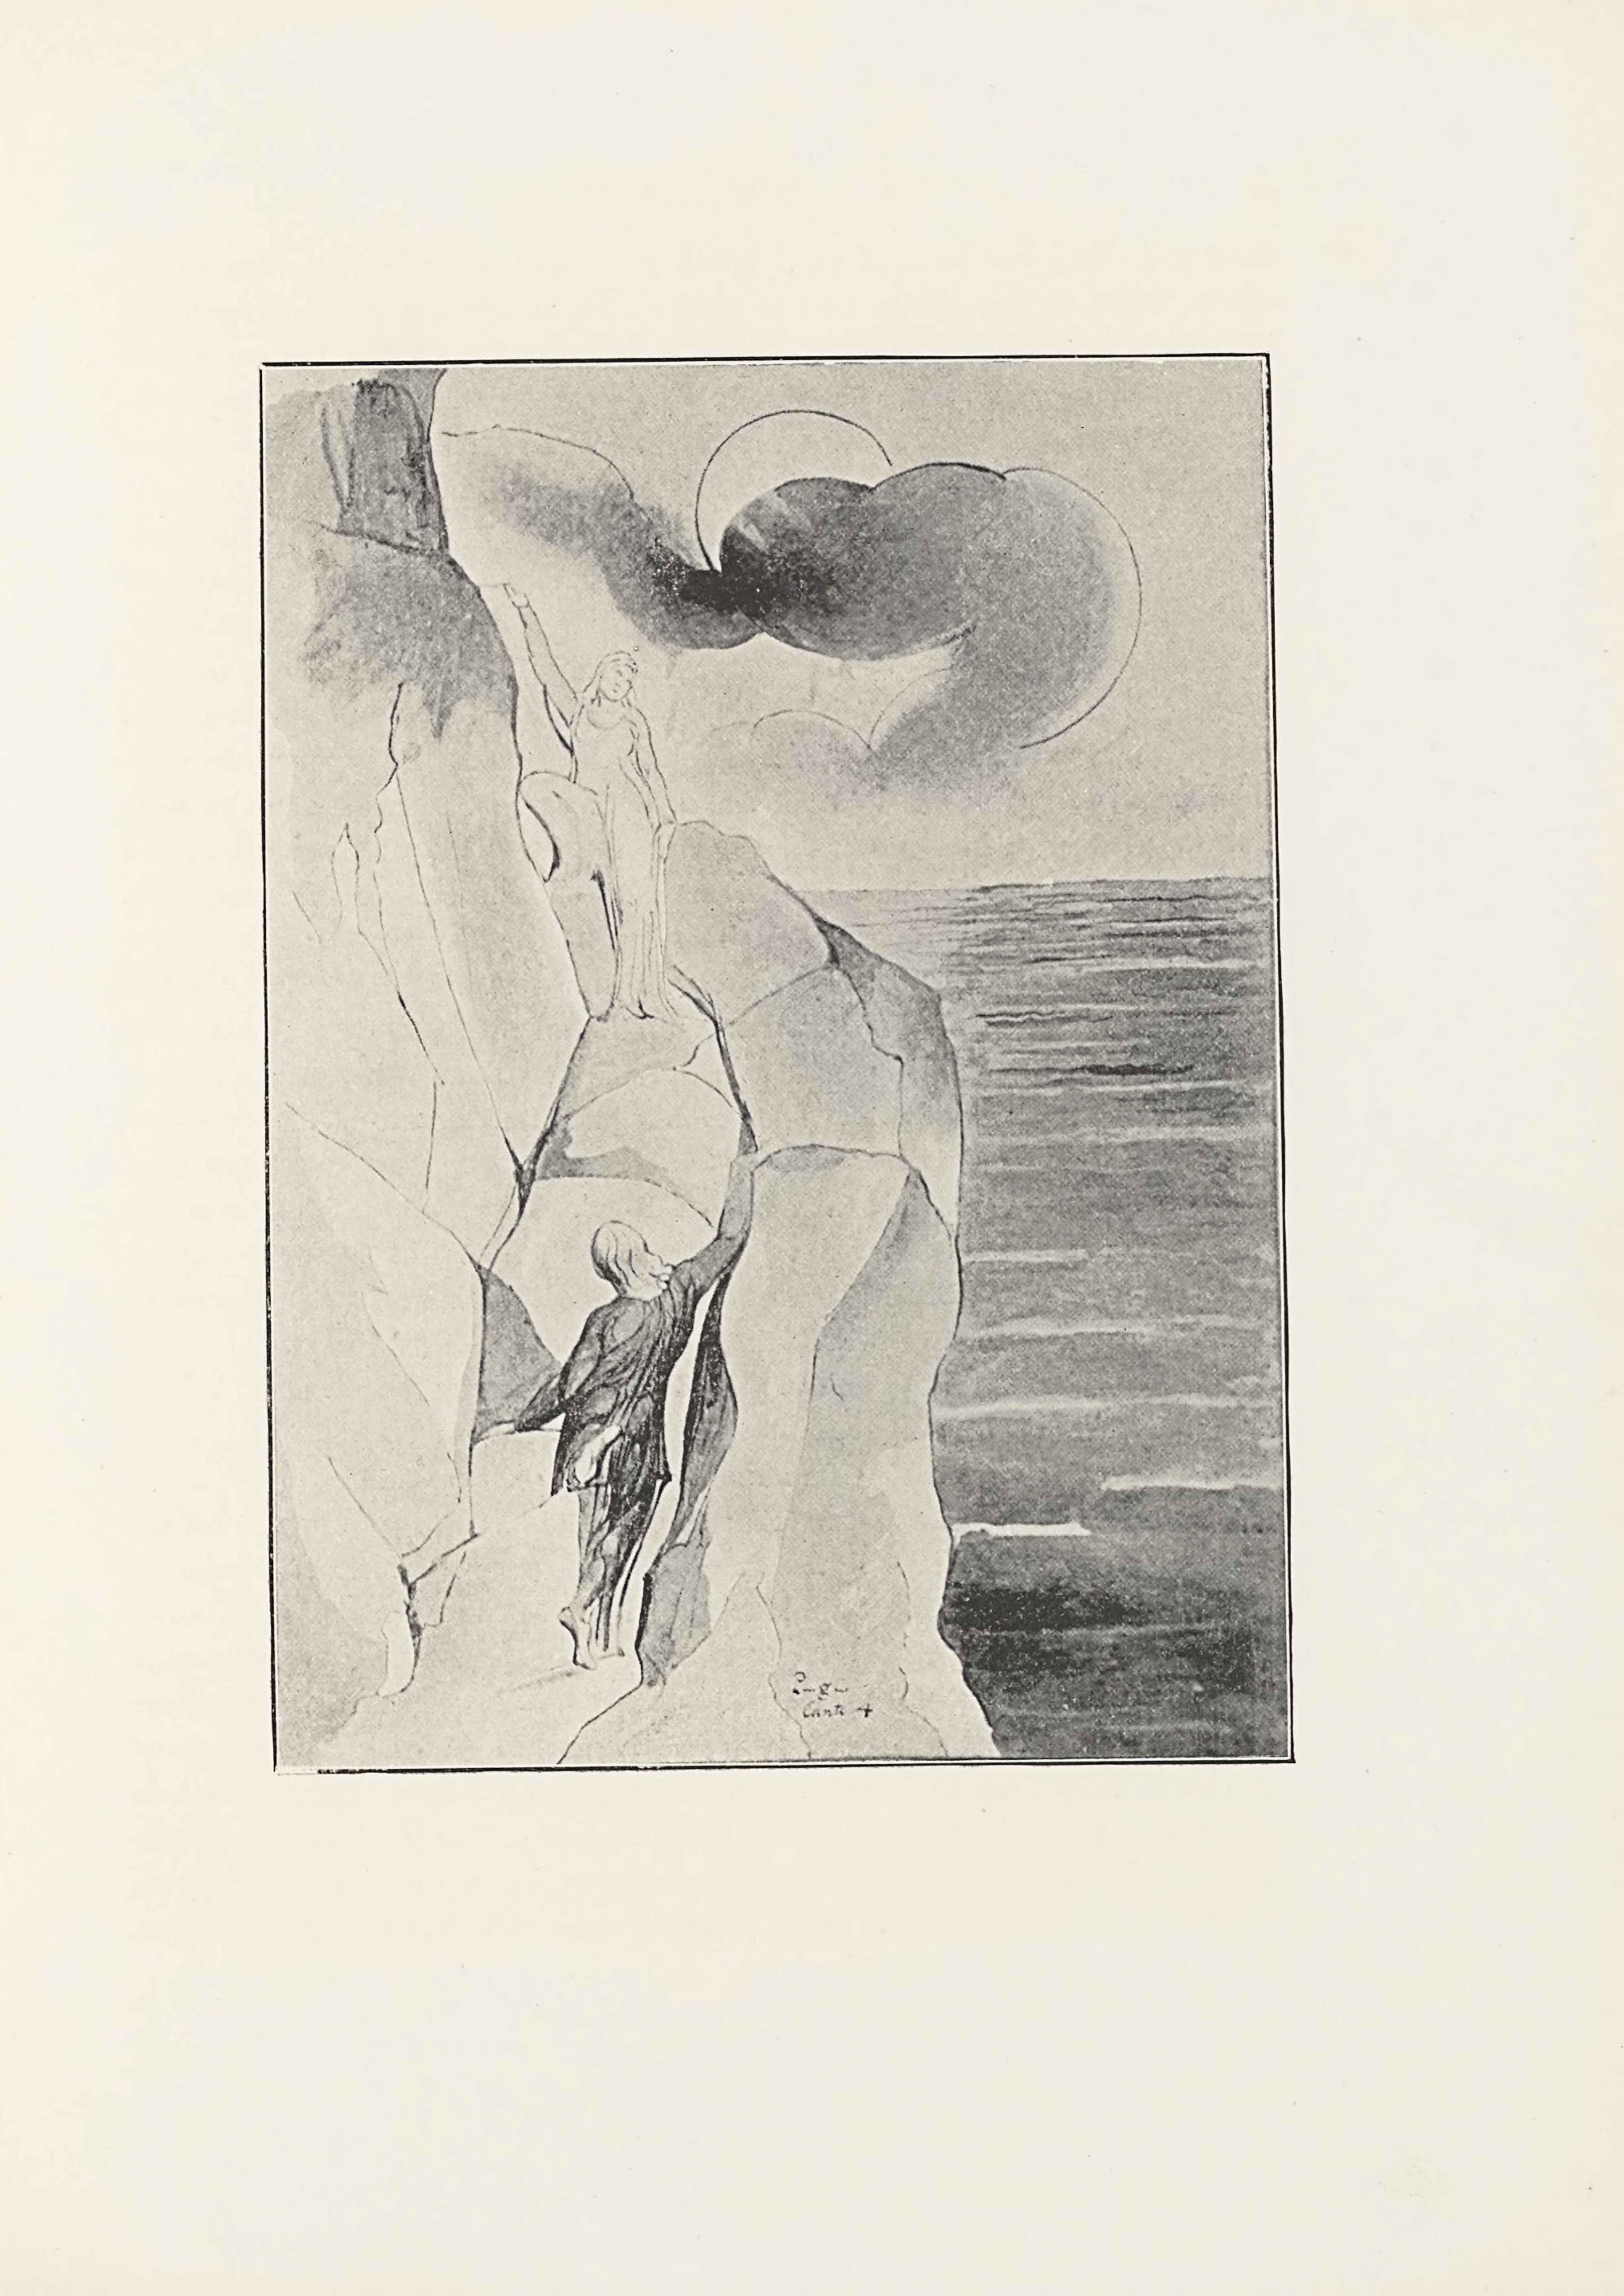 "This halftone reproduction of Blake's water-colour drawing for Dante's                  Purgatory is in portrait orientation. The image shows a rocky mountain on the left                  with sea and a sky on the right. The mountain is being climbed two male figures,                  Dante and Virgil. One figure higher up beckons towards another figure who is                  ascending. The mountain is comprised of many large rocks. The climbing figure has                  his back to the viewer and is wearing dark pants and a loose, dark long-sleeve                  shirt. The figure's right arm is extended up and to the right, reaching to the top                  of a chunk of rock. His right foot is drawn back, and his left hand is resting                  down on a rock to the left. This figure has light hair that falls to just below                  the shoulders. At three-quarters of the height of the page is the other figure.                  This figure is facing the viewer, and standing on one rock with just their left                  foot. The figure's right leg is bent up and the right foot is resting on a higher                  rock. The figure's left arm is down by his side. The figure's right arm is lifted                  straight up and to the right of his head. The figure is wearing a transparent robe                  that flows around the body. HIs head is tilted down slightly to look at the water                  below to the right on the page. There is more rock rising above and to the left                  behind him. In the background is the sky, with one large circle representing the                  sun or moon in the centre of the sky and a trail of dark mist is in front and                  across it. To the right of the mountain and from the mid-height of the page down                  is wavy and dark water of the sea. The top half of the page behind the sun is open                  sky. In the centre of the foreground on top of the bottom of the rocky mountain is                  text that reads:: ""Purgatory // Canto 4""."